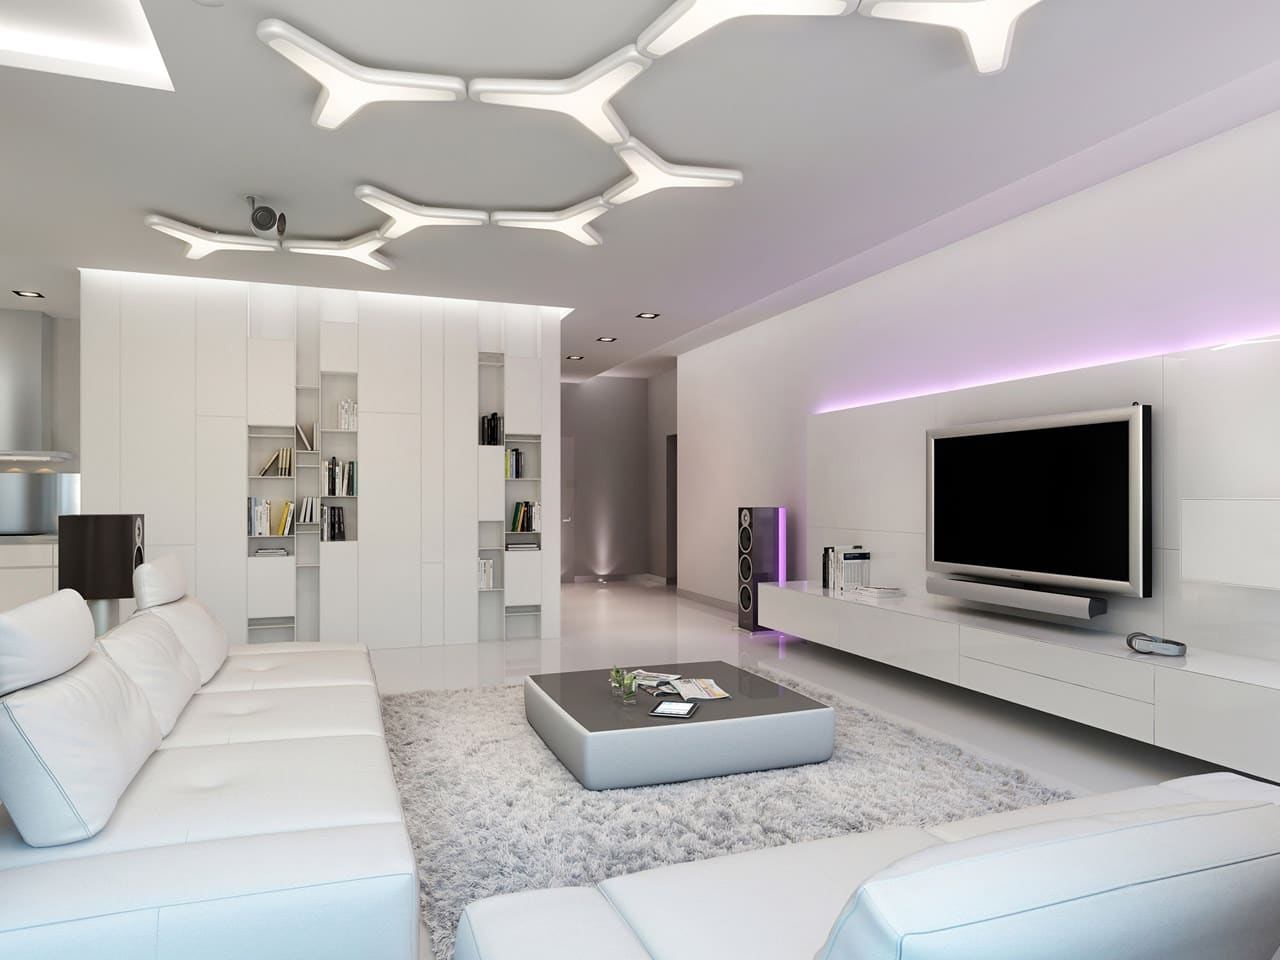 Decoraci n de interiores modernos construye hogar - Ideas decoracion salon moderno ...